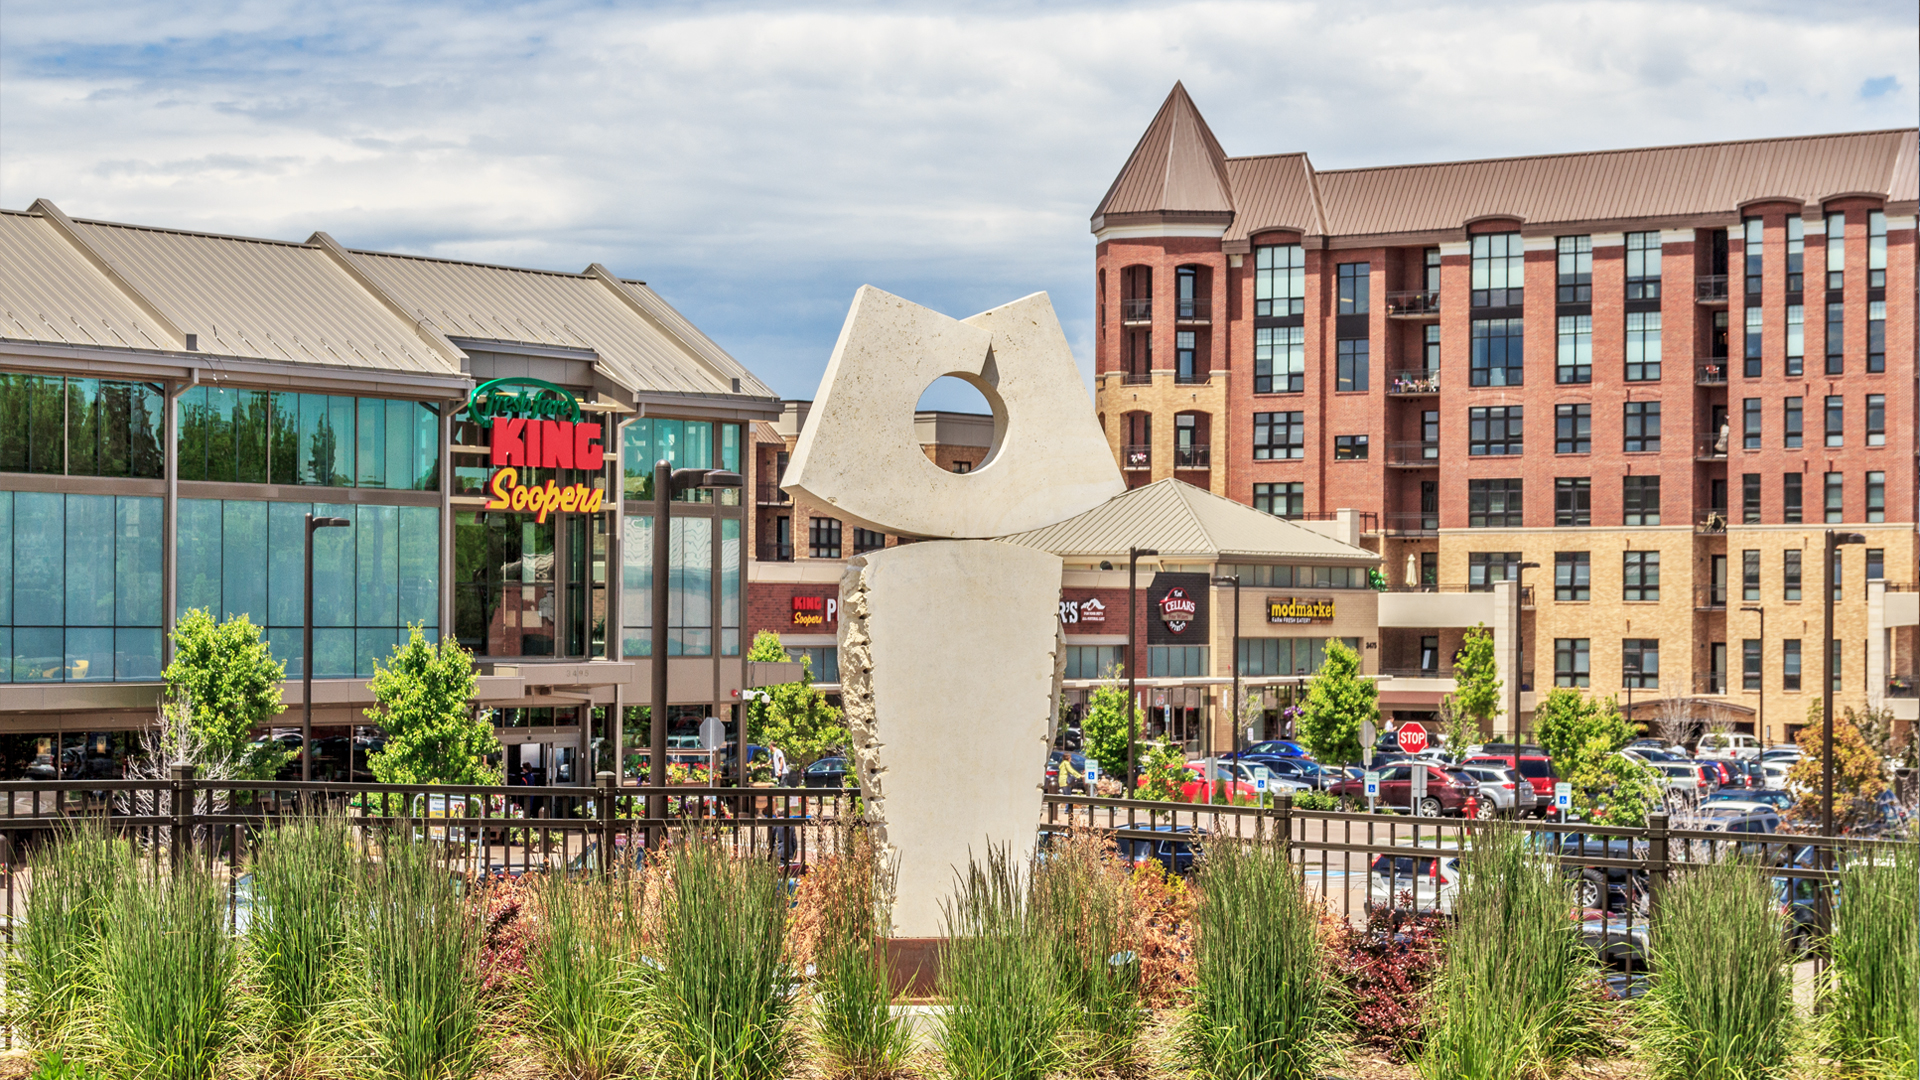 <p>This new mixed-use neighborhood in the heart of one of Denver's most sought-after residential areas is another example of Continuum's capacity to elegantly blend new development into existing neighborhoods with an established identity.</p>